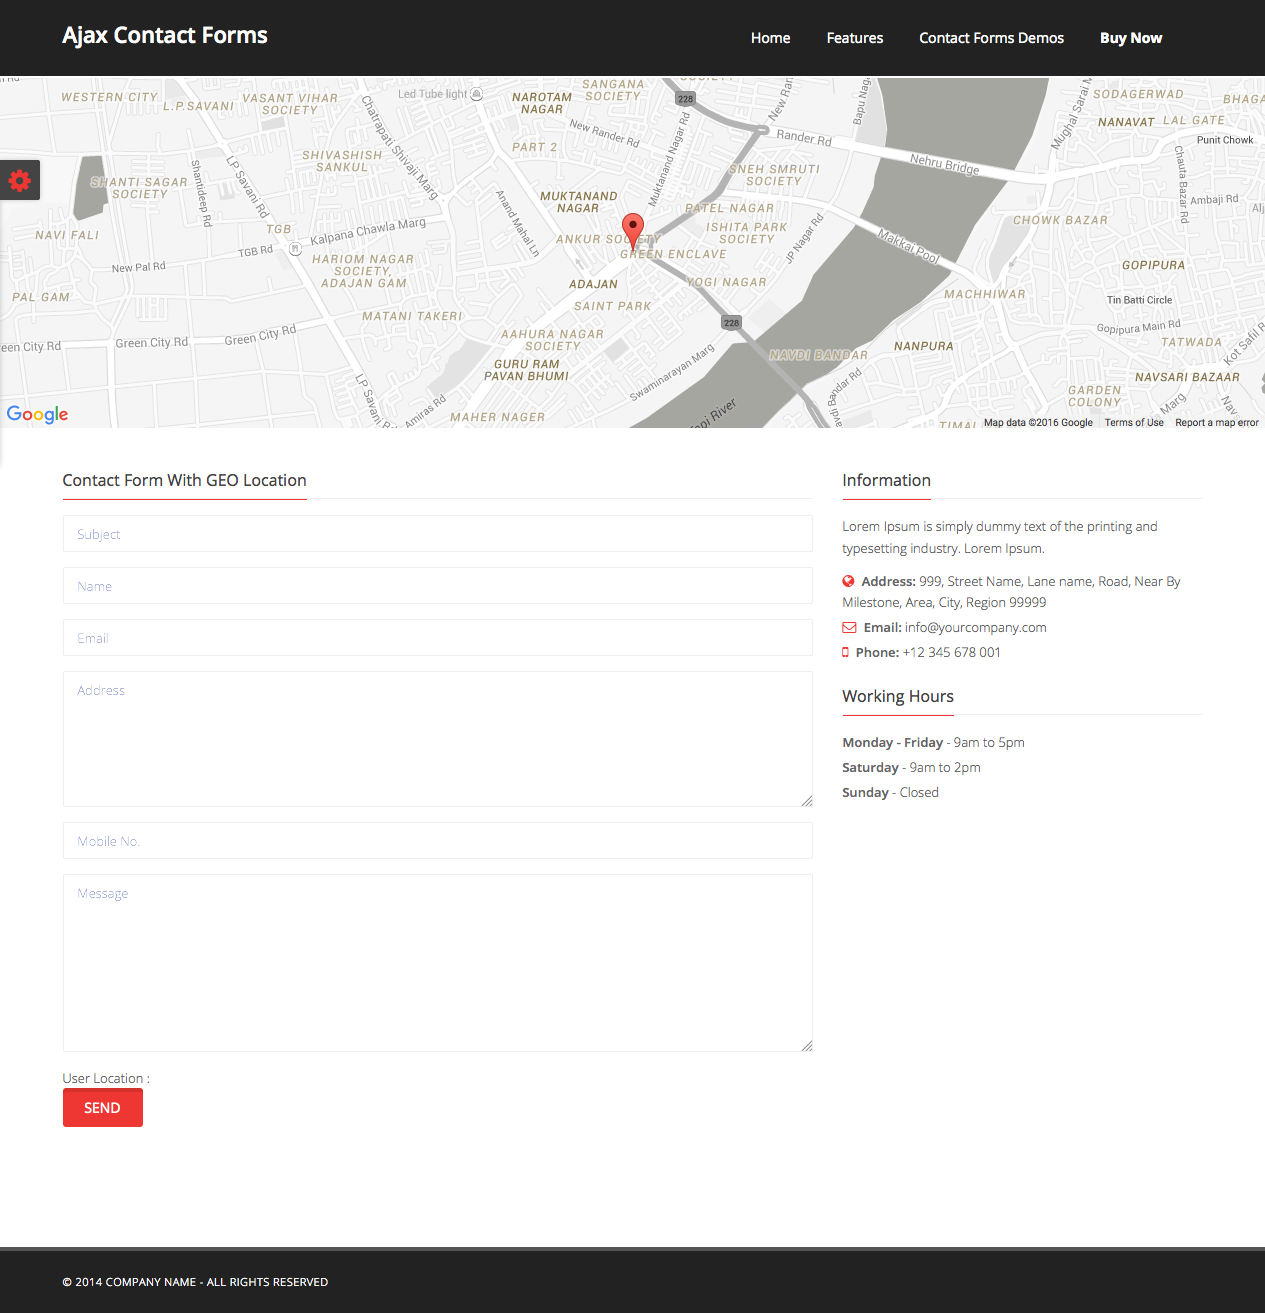 Ajax Contact Form by S_N_K | CodeCanyon